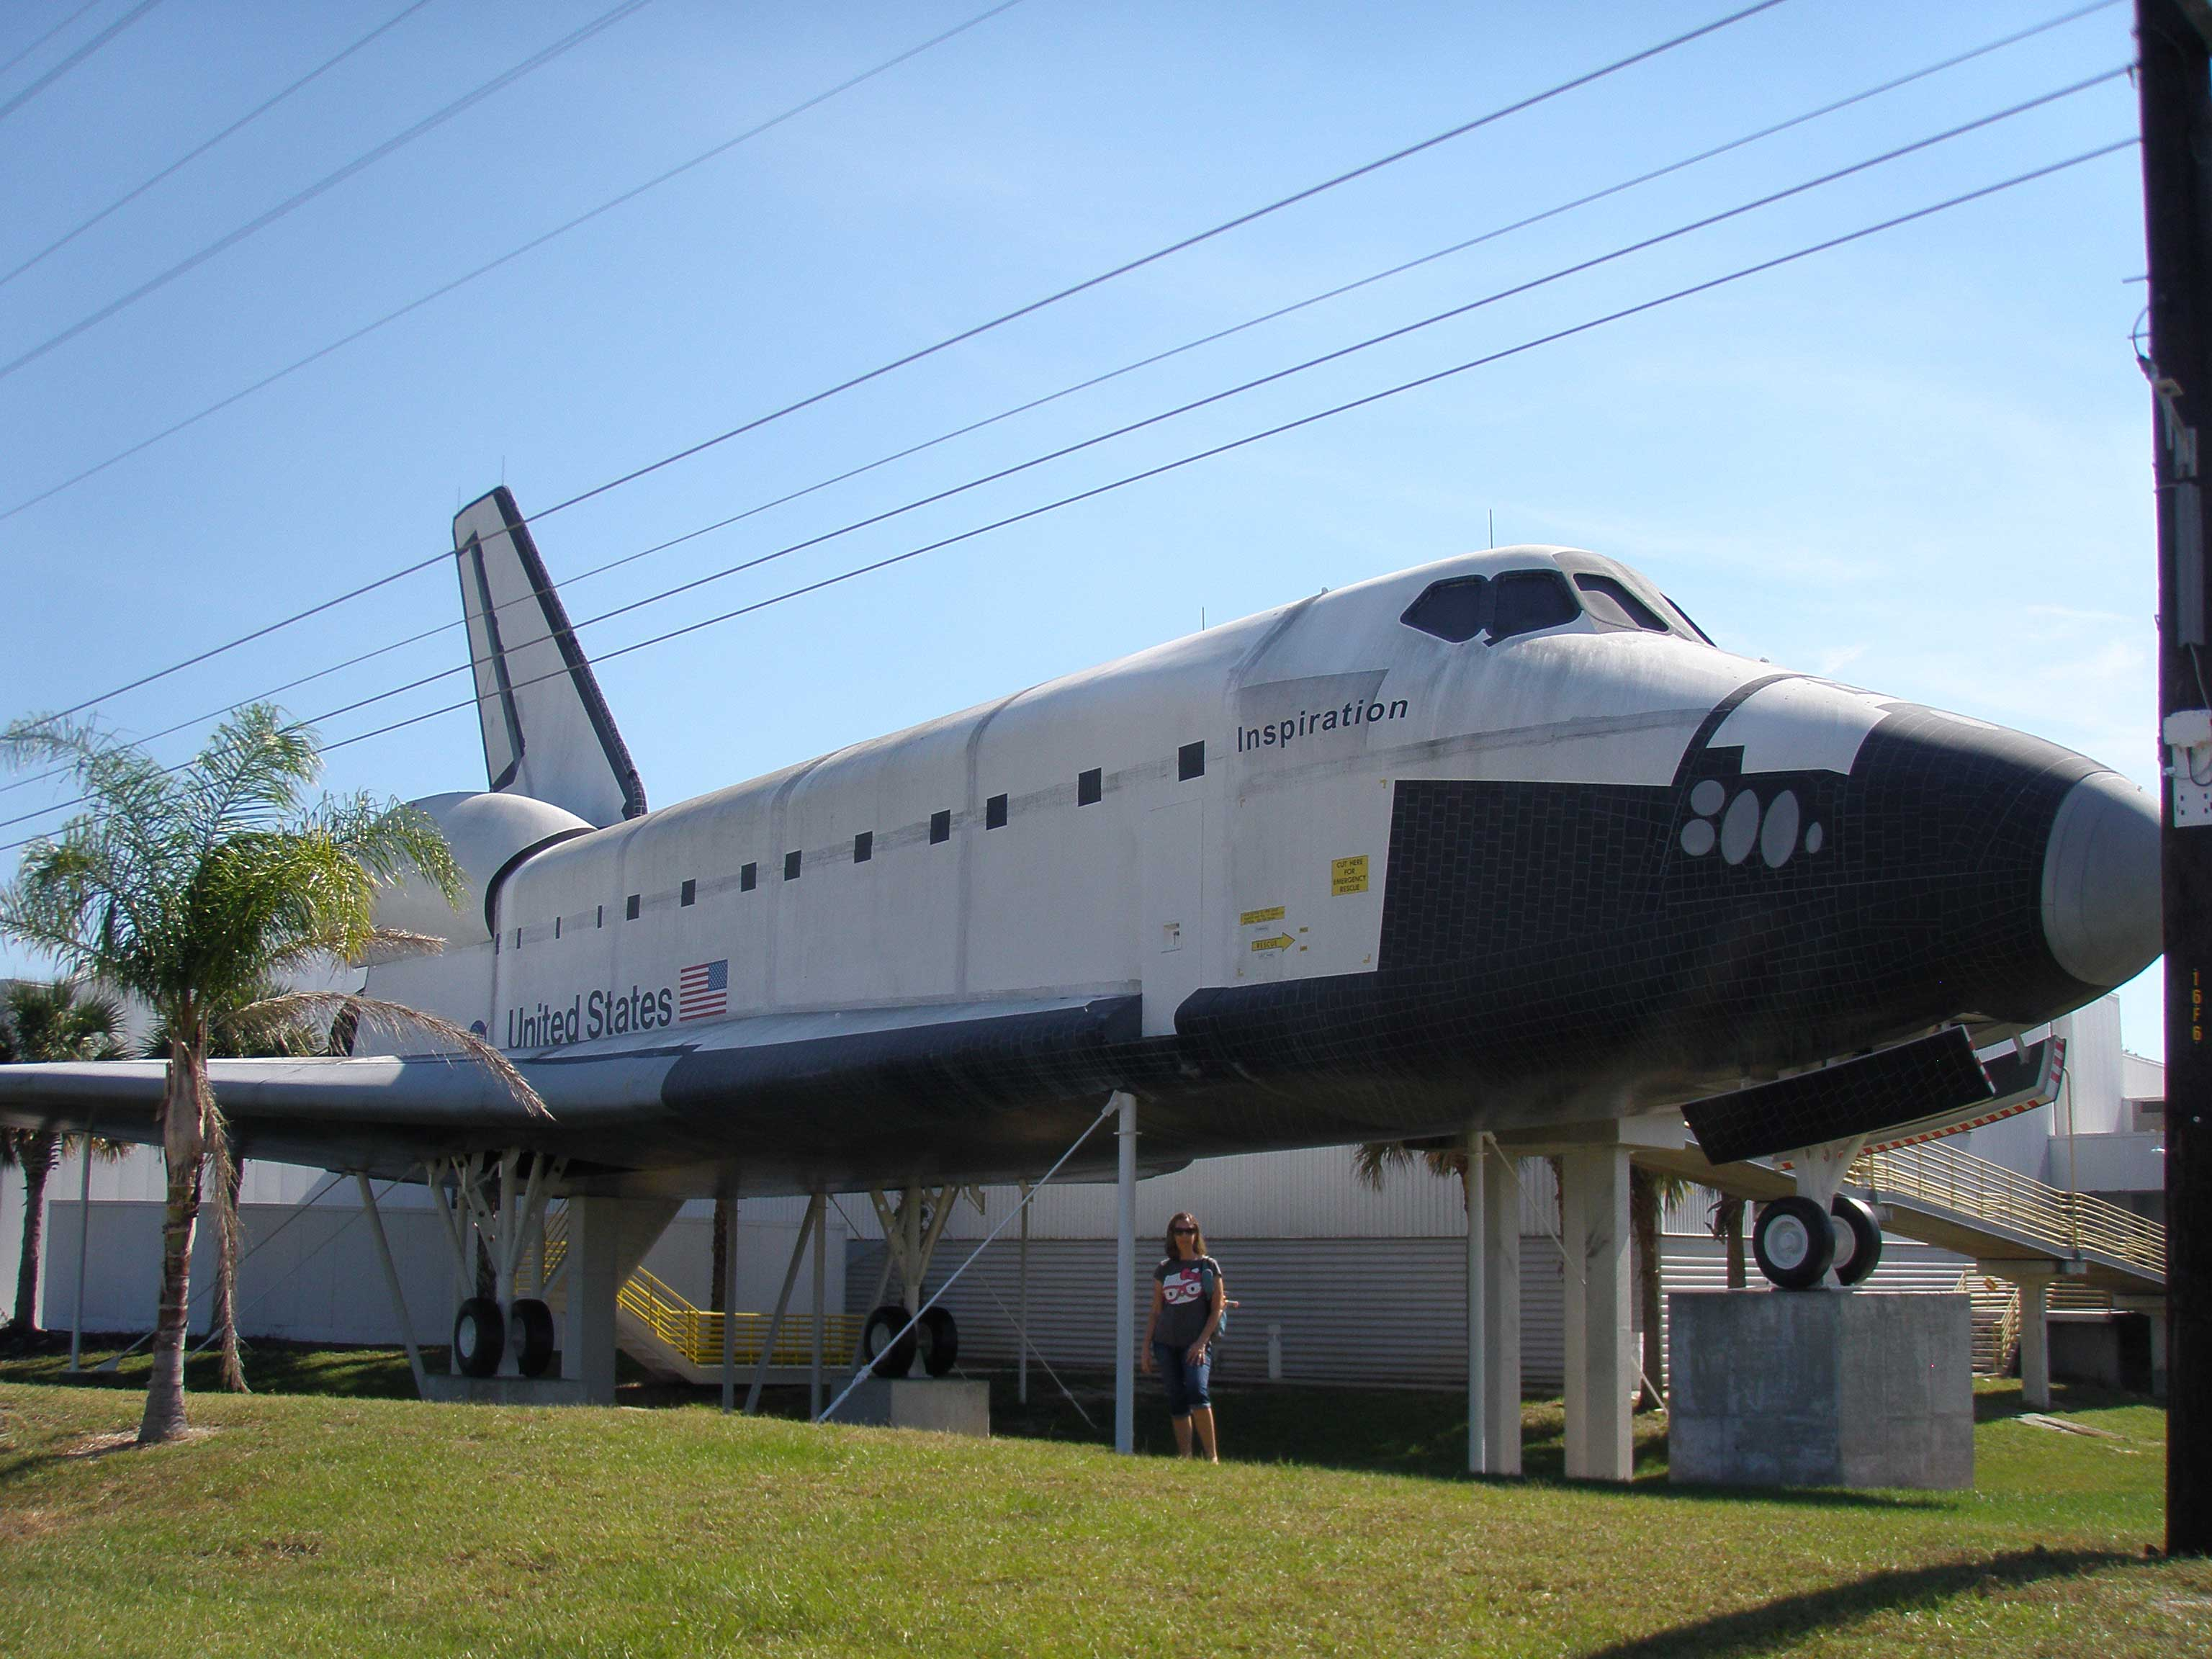 space shuttle inspiration - photo #11